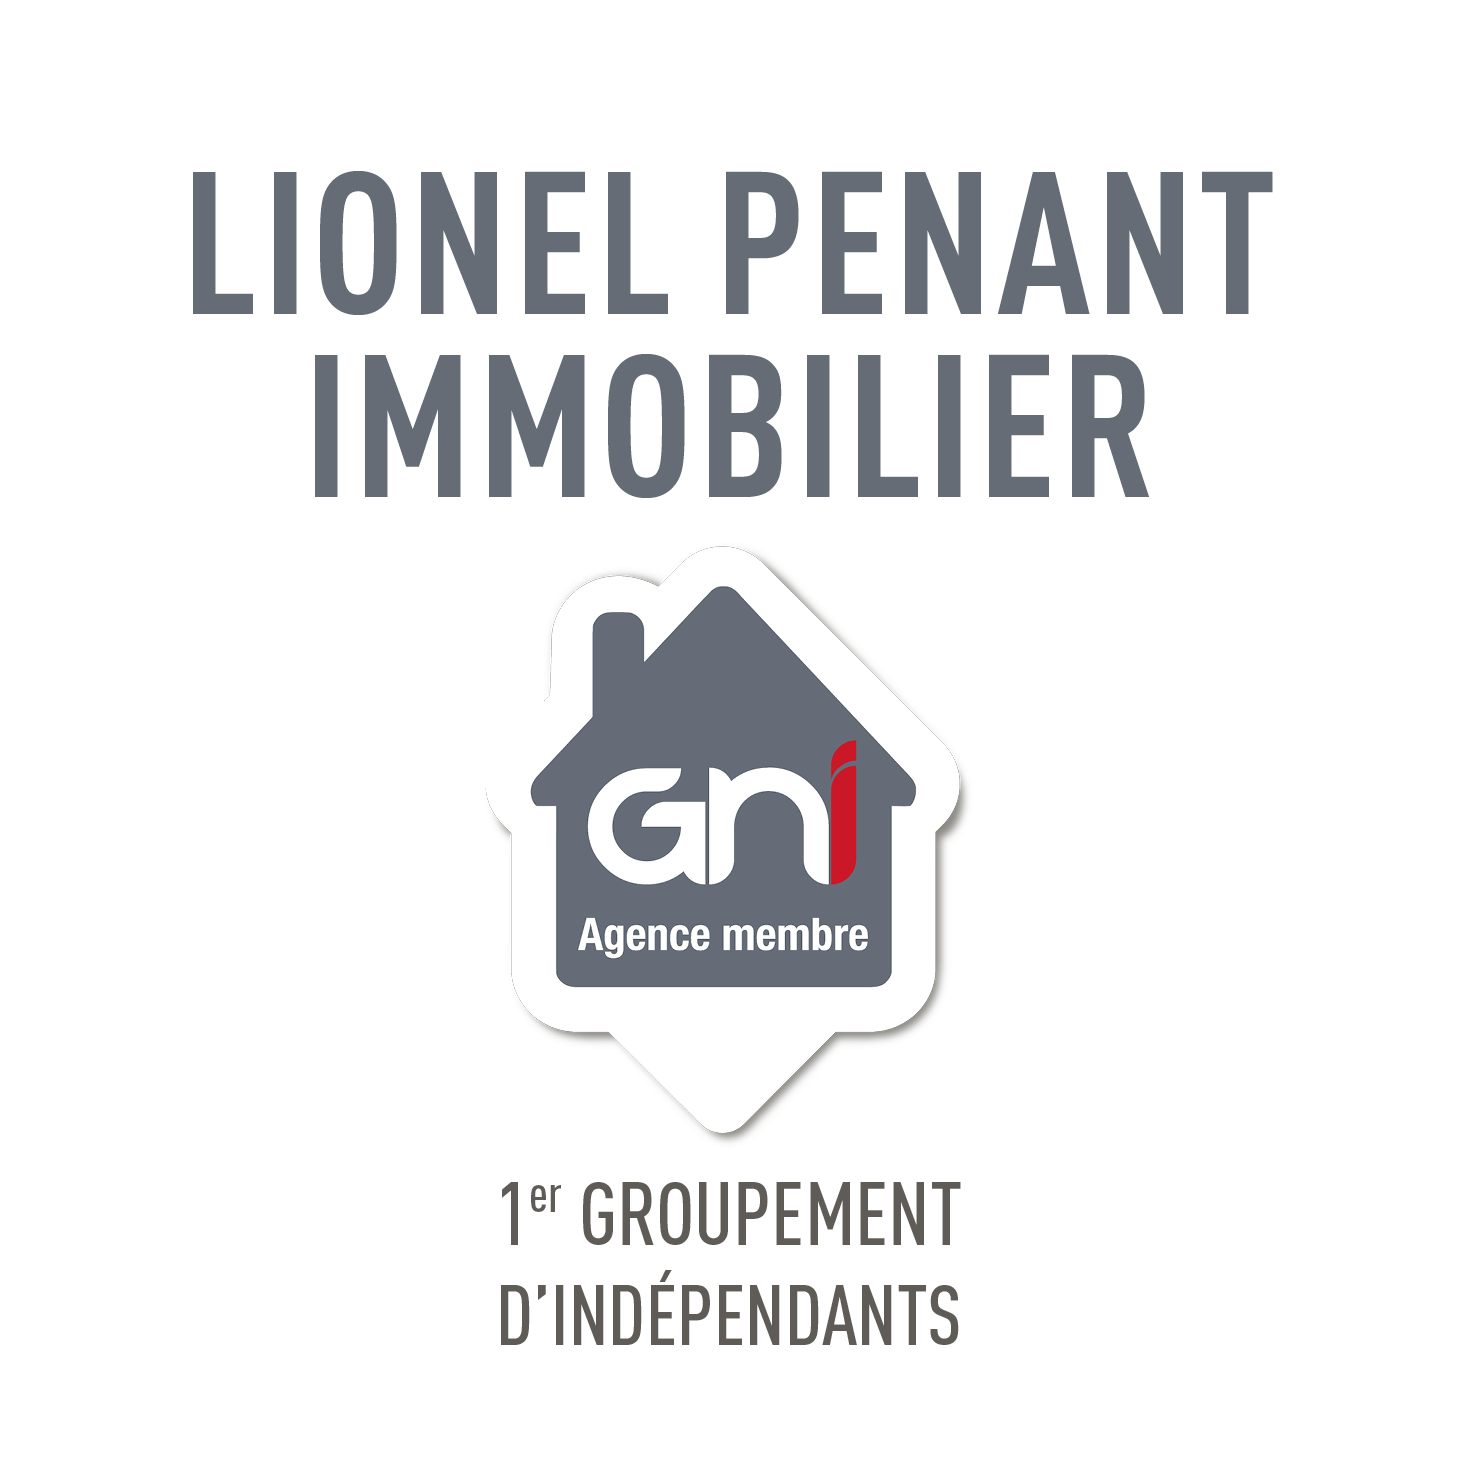 GNIMMO - Lionel Penant Immobilier